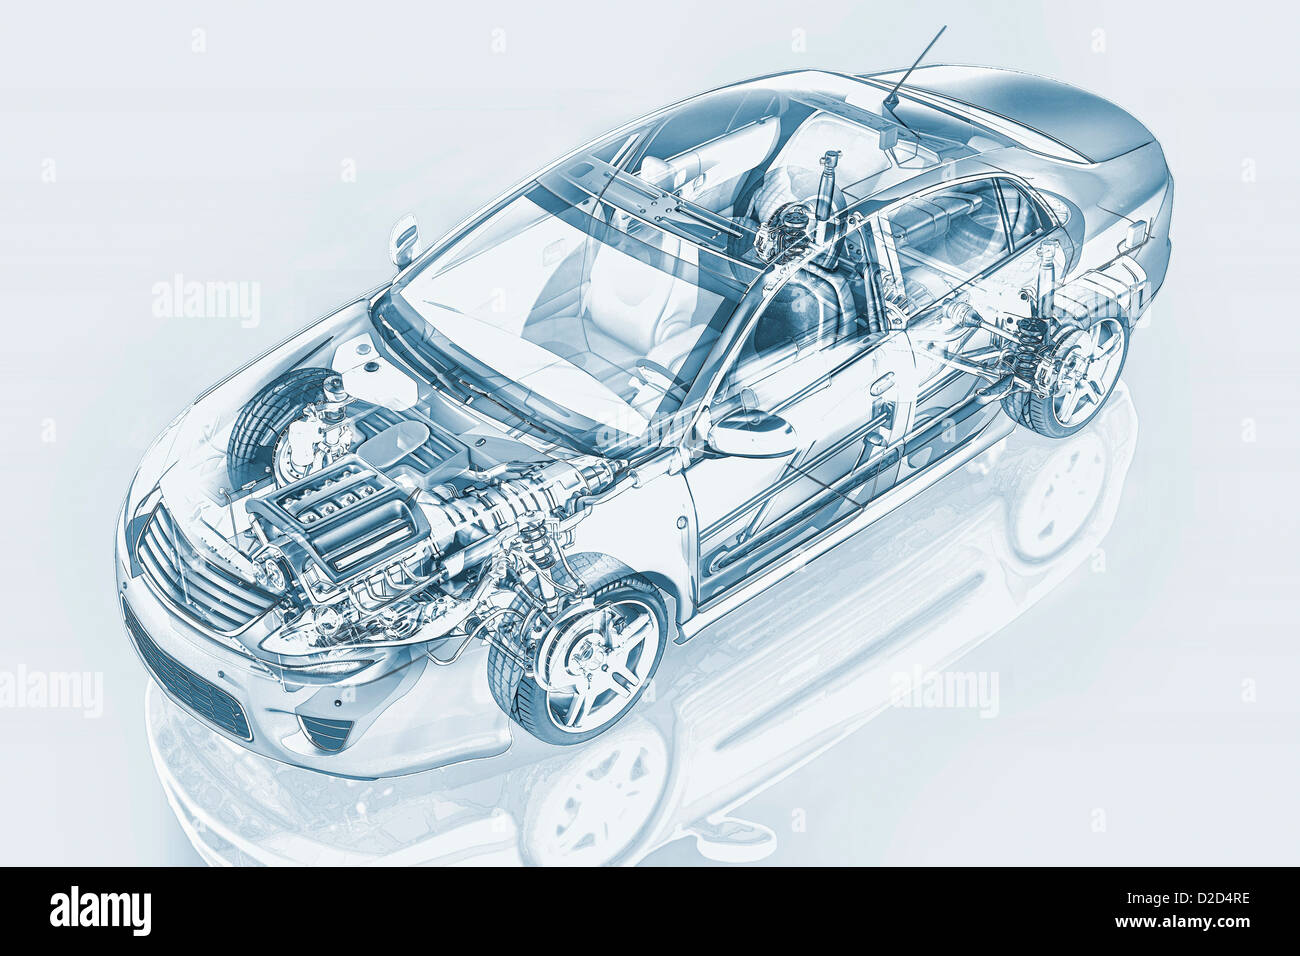 Car Engine Cutaway Stock Photos & Car Engine Cutaway Stock Images ...